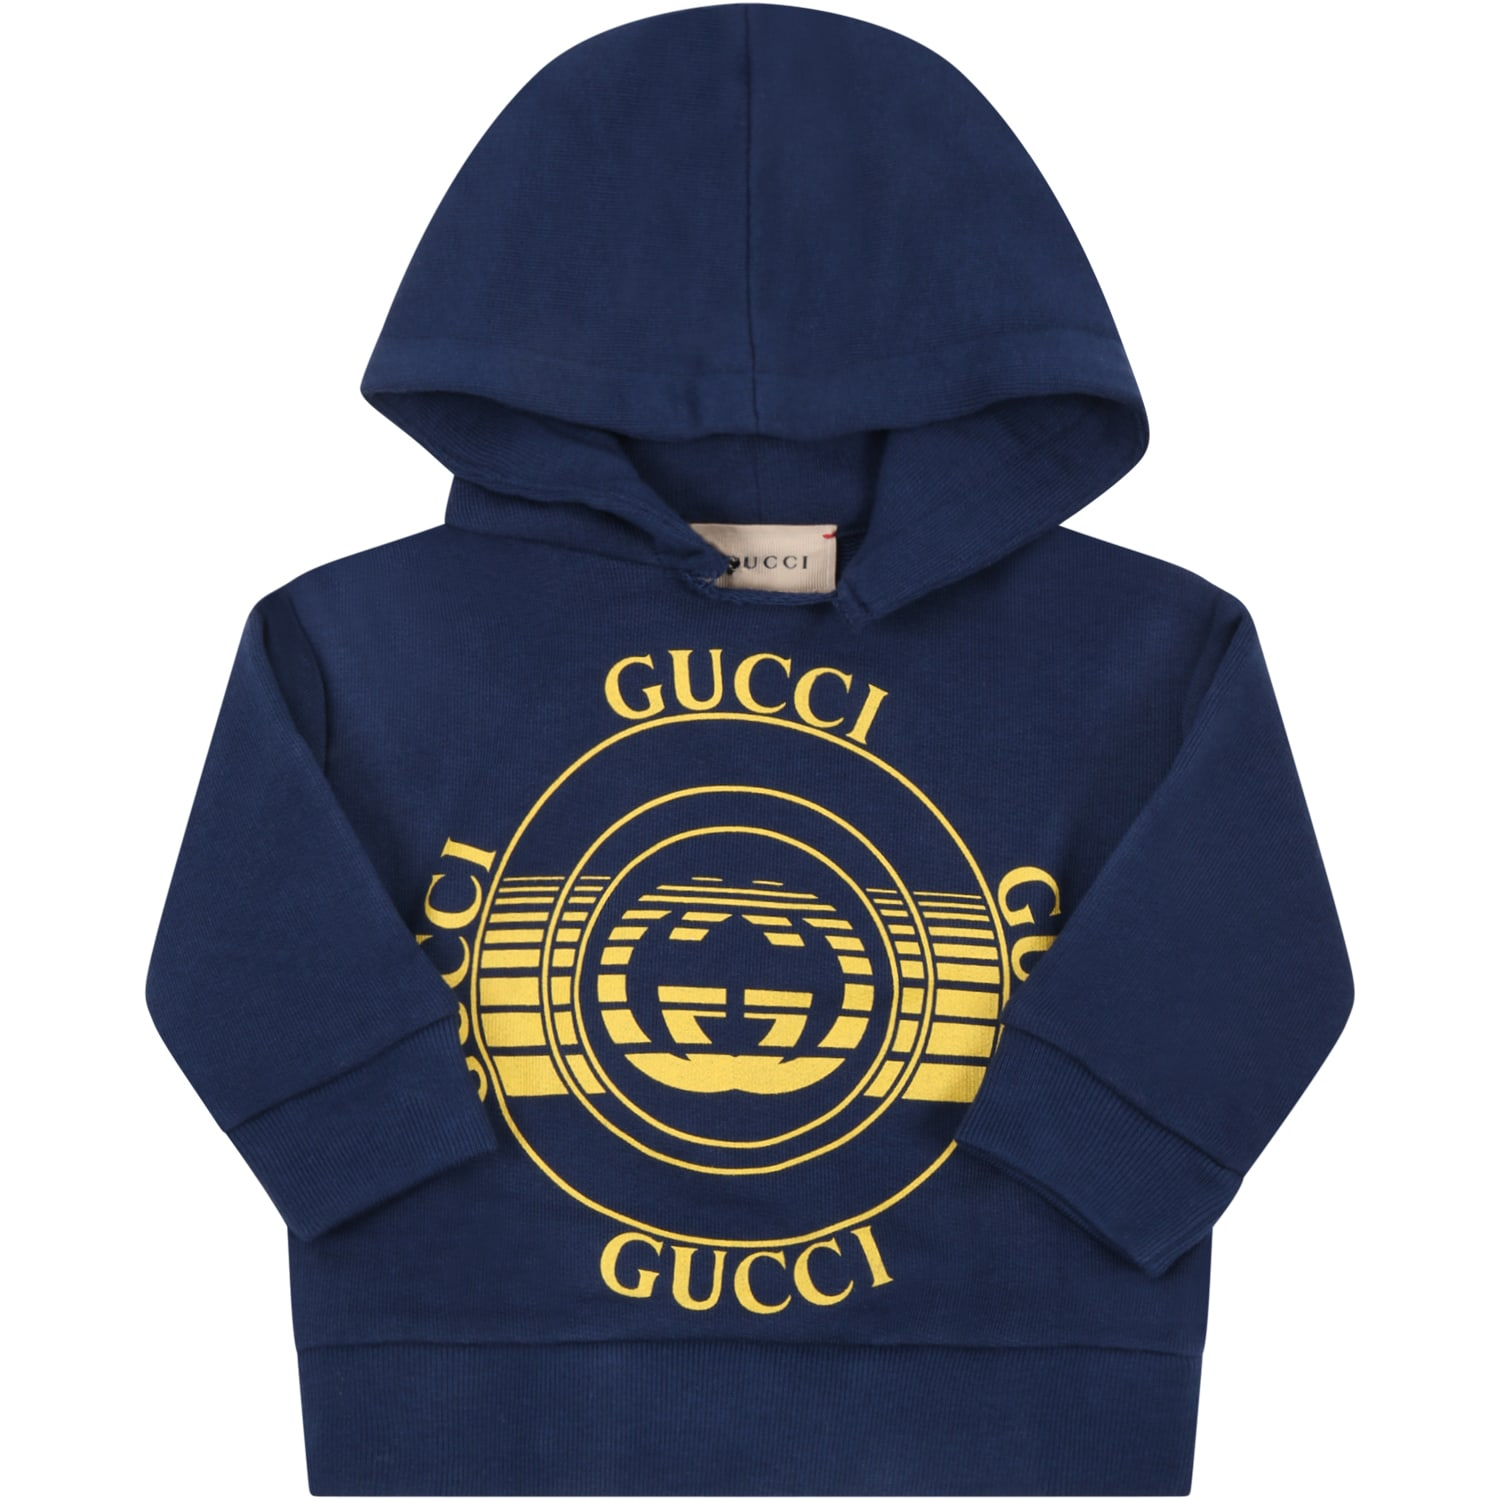 Gucci BLUE SWEATSHIRT FOR BABYKIDS WITH LOGOS